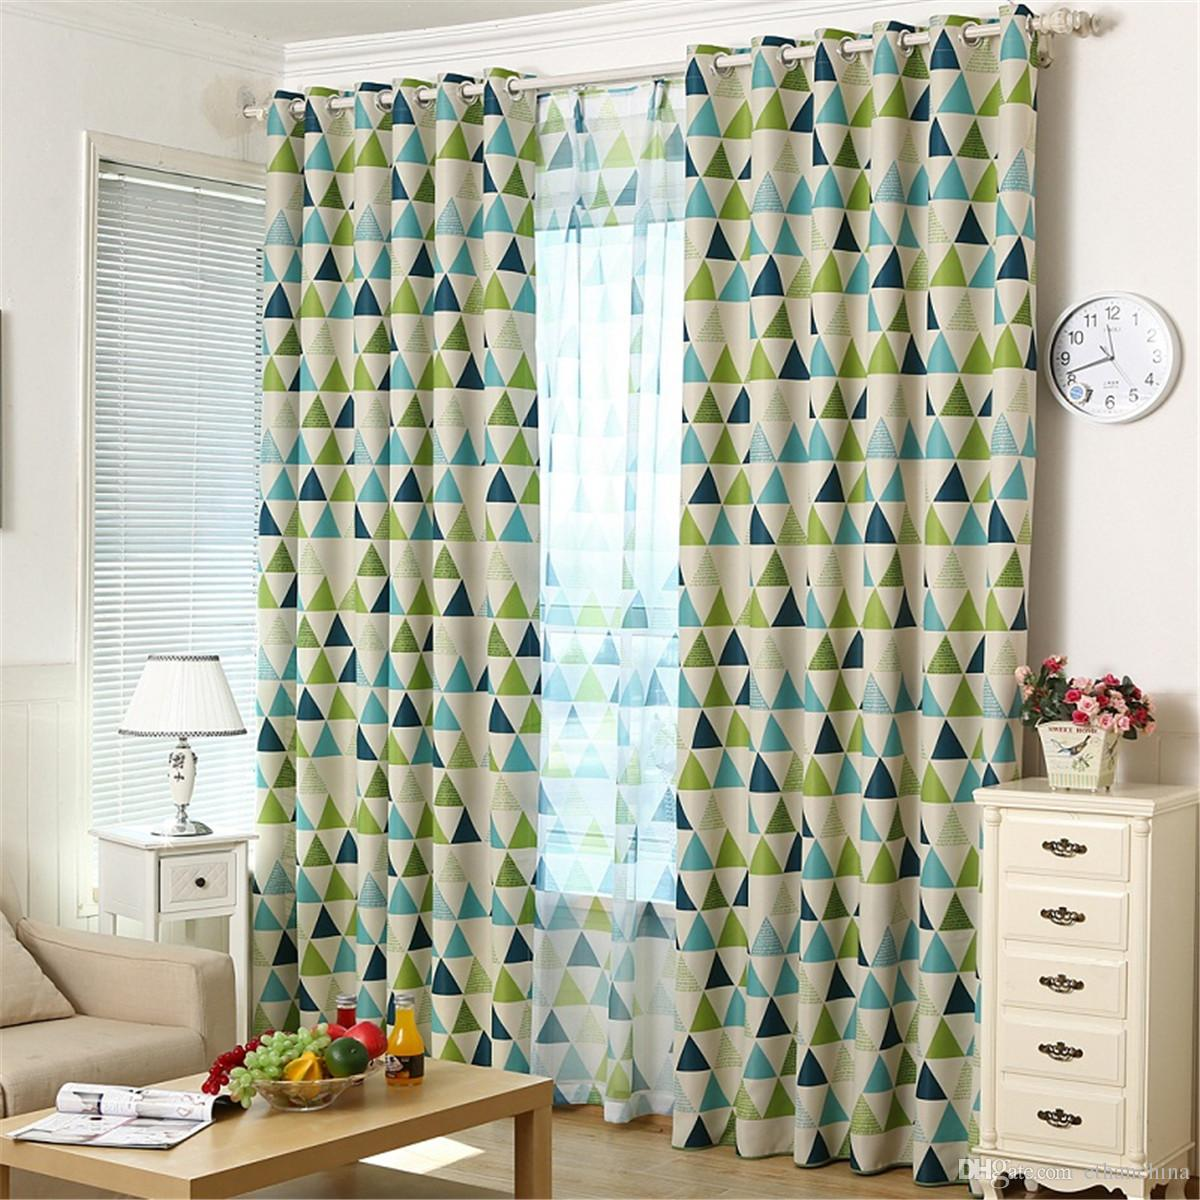 2018 Ivolador Geometric Triangles Pattern Curtain Blackout Curtains Shade Cloth Sun Insulation 100250cm Green From Ethanchina 2312